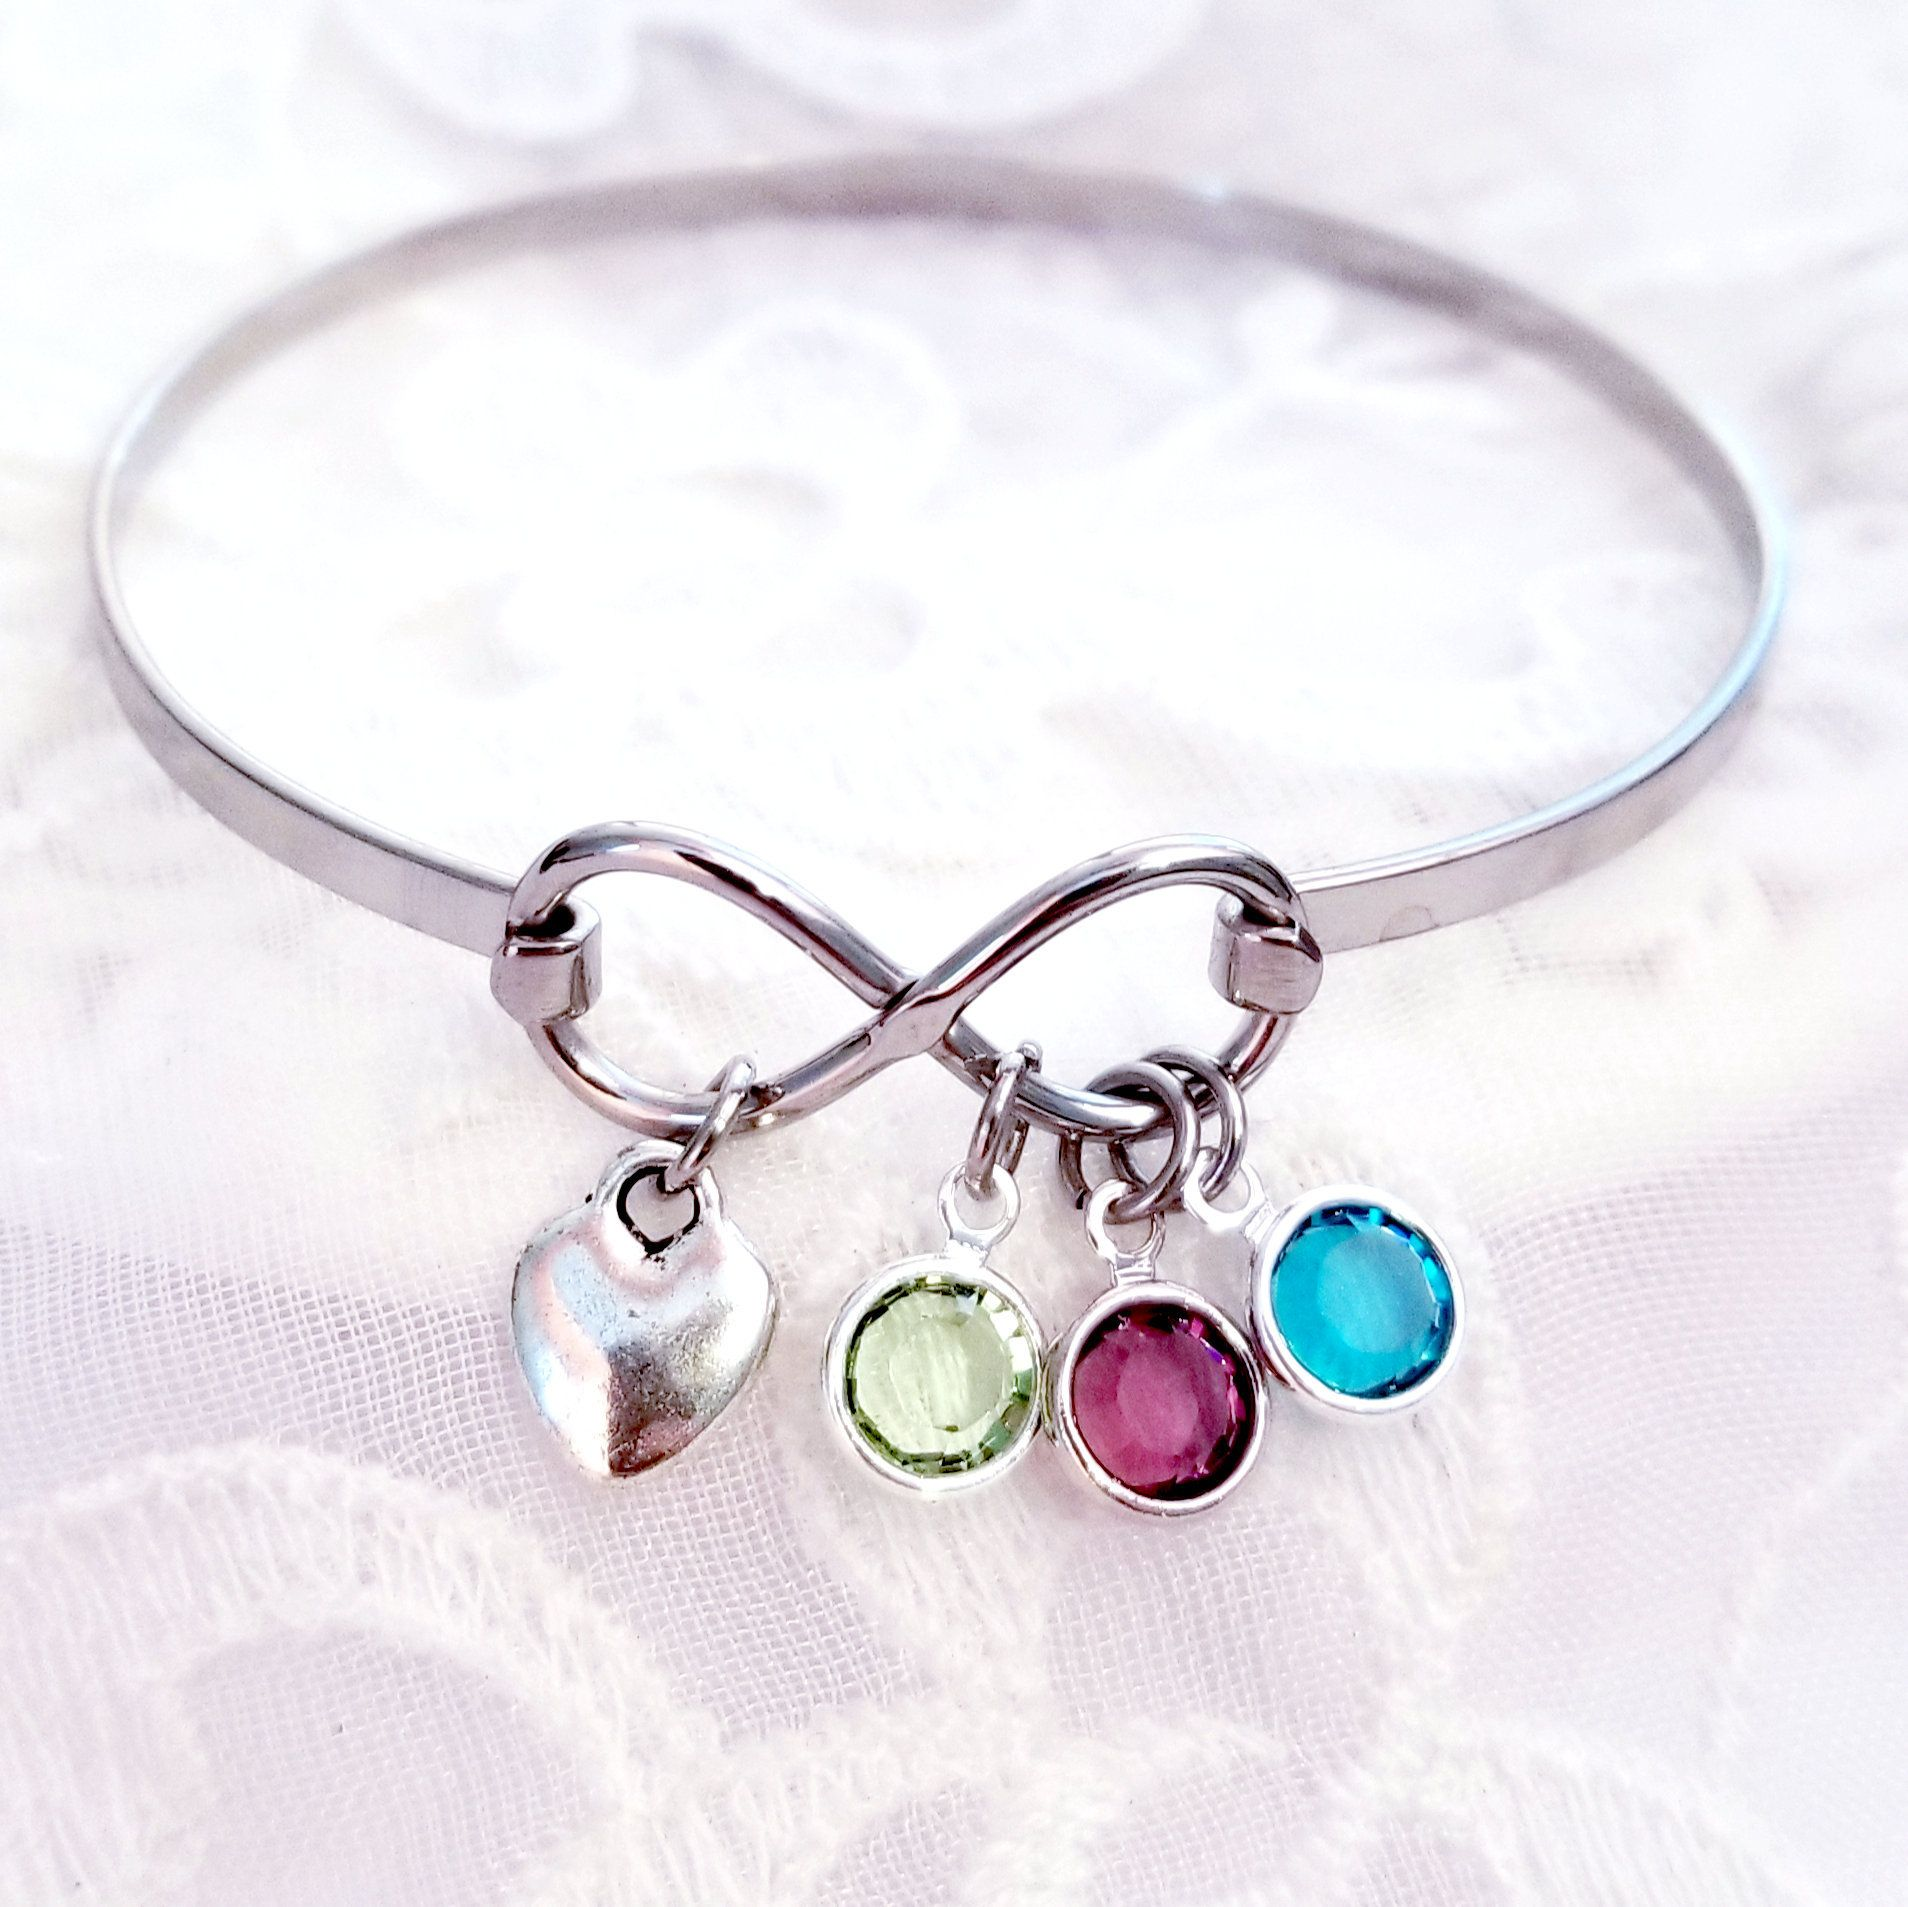 Picture Bracelet Photo Jewelry for Mother Photo Charm Bracelet Photo Gift for Grandmother Birthstone Jewelry New Mom Wife Bracelet Gift